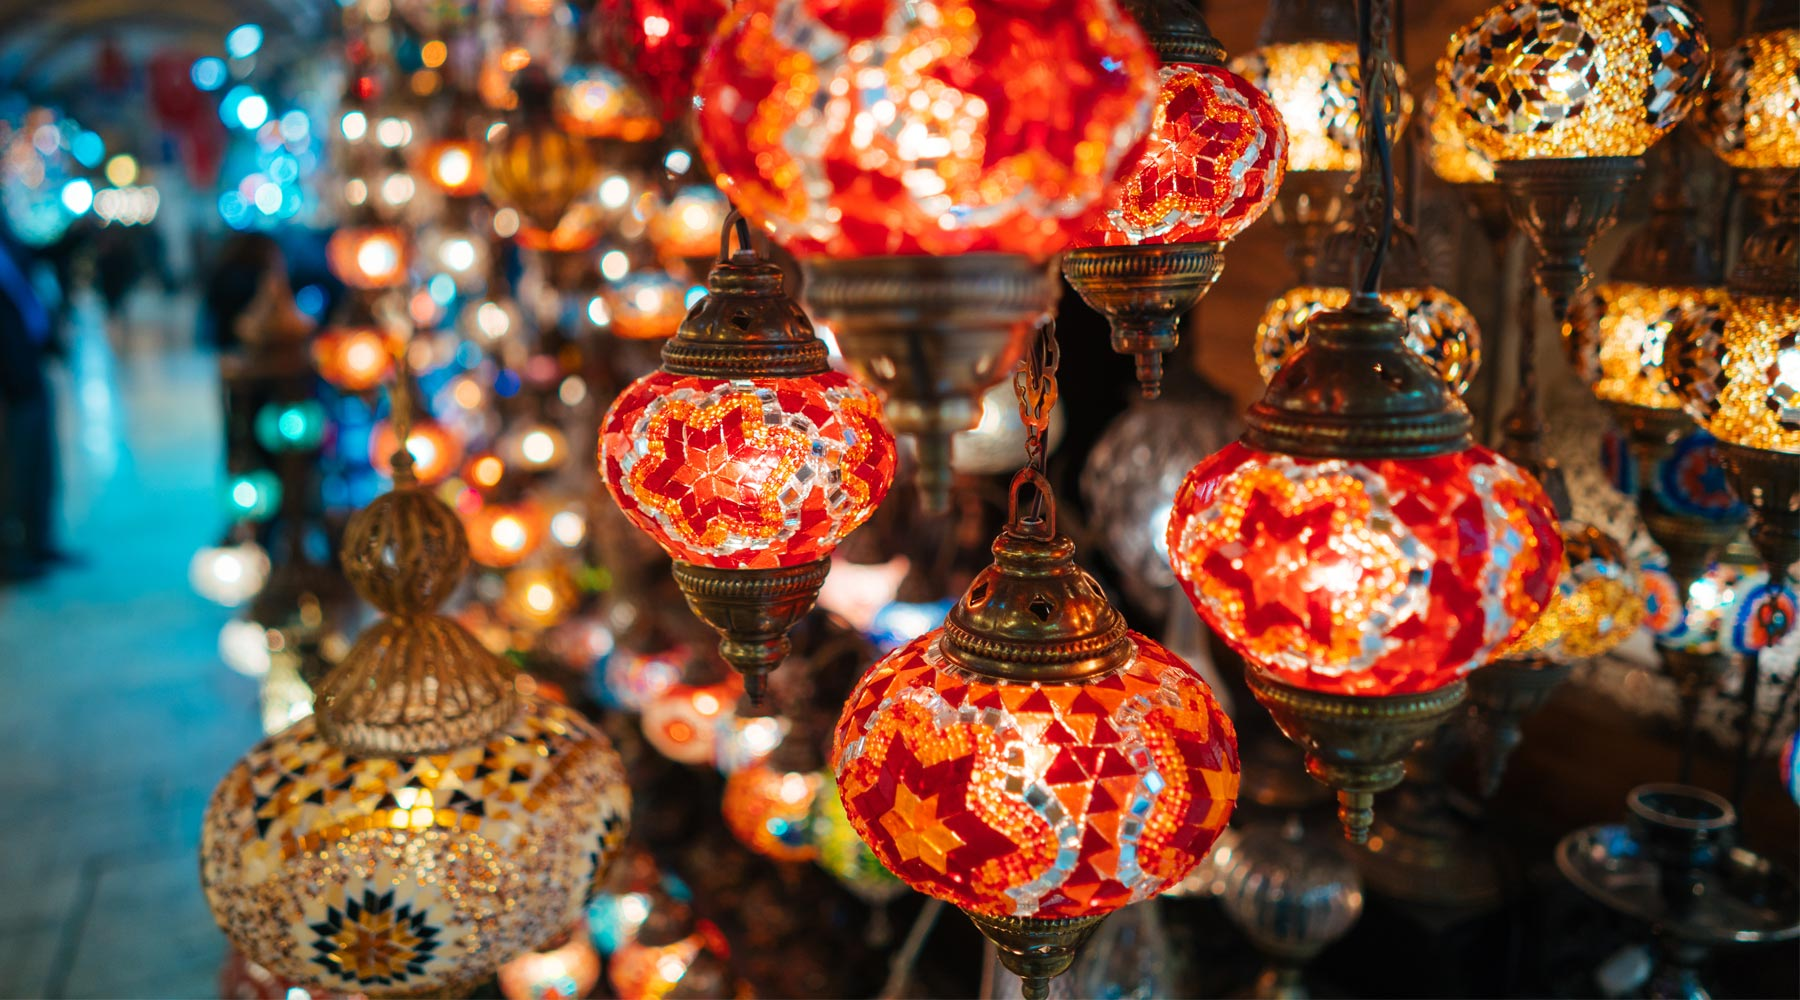 Istanbul Grand Bazaar – The Largest Covered Market in The World